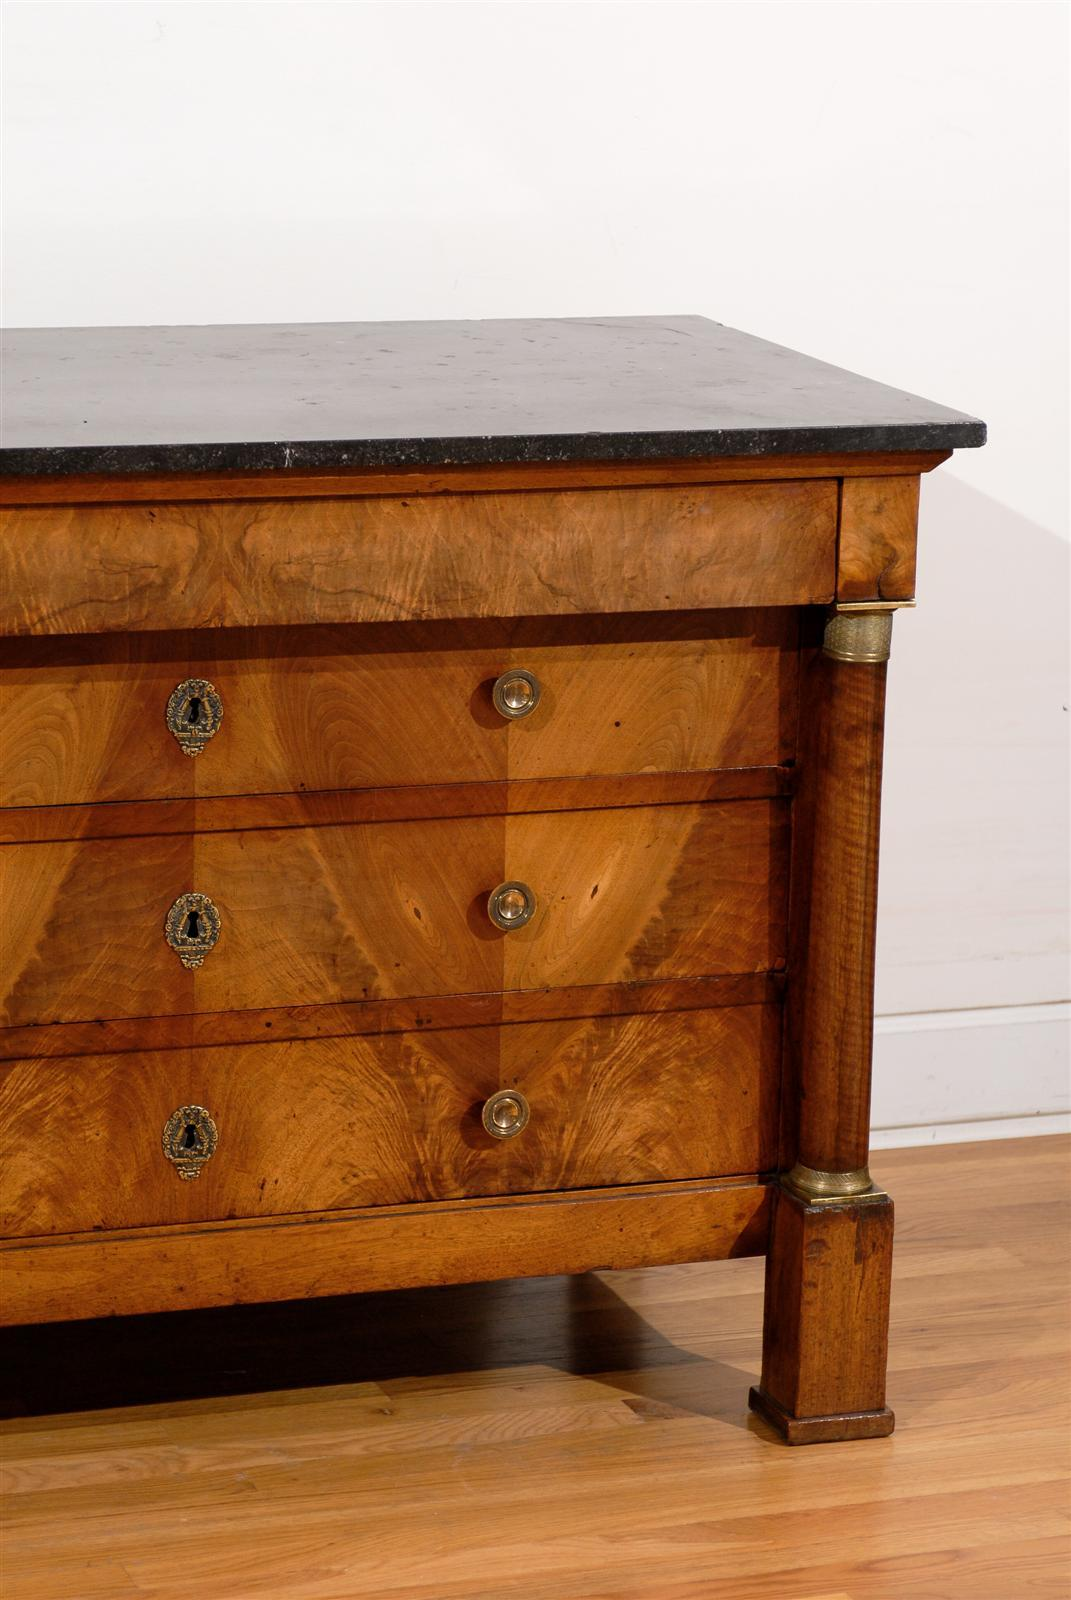 French Early 19th Century Empire Period Four-Drawer Commode with Marble Top For Sale 6